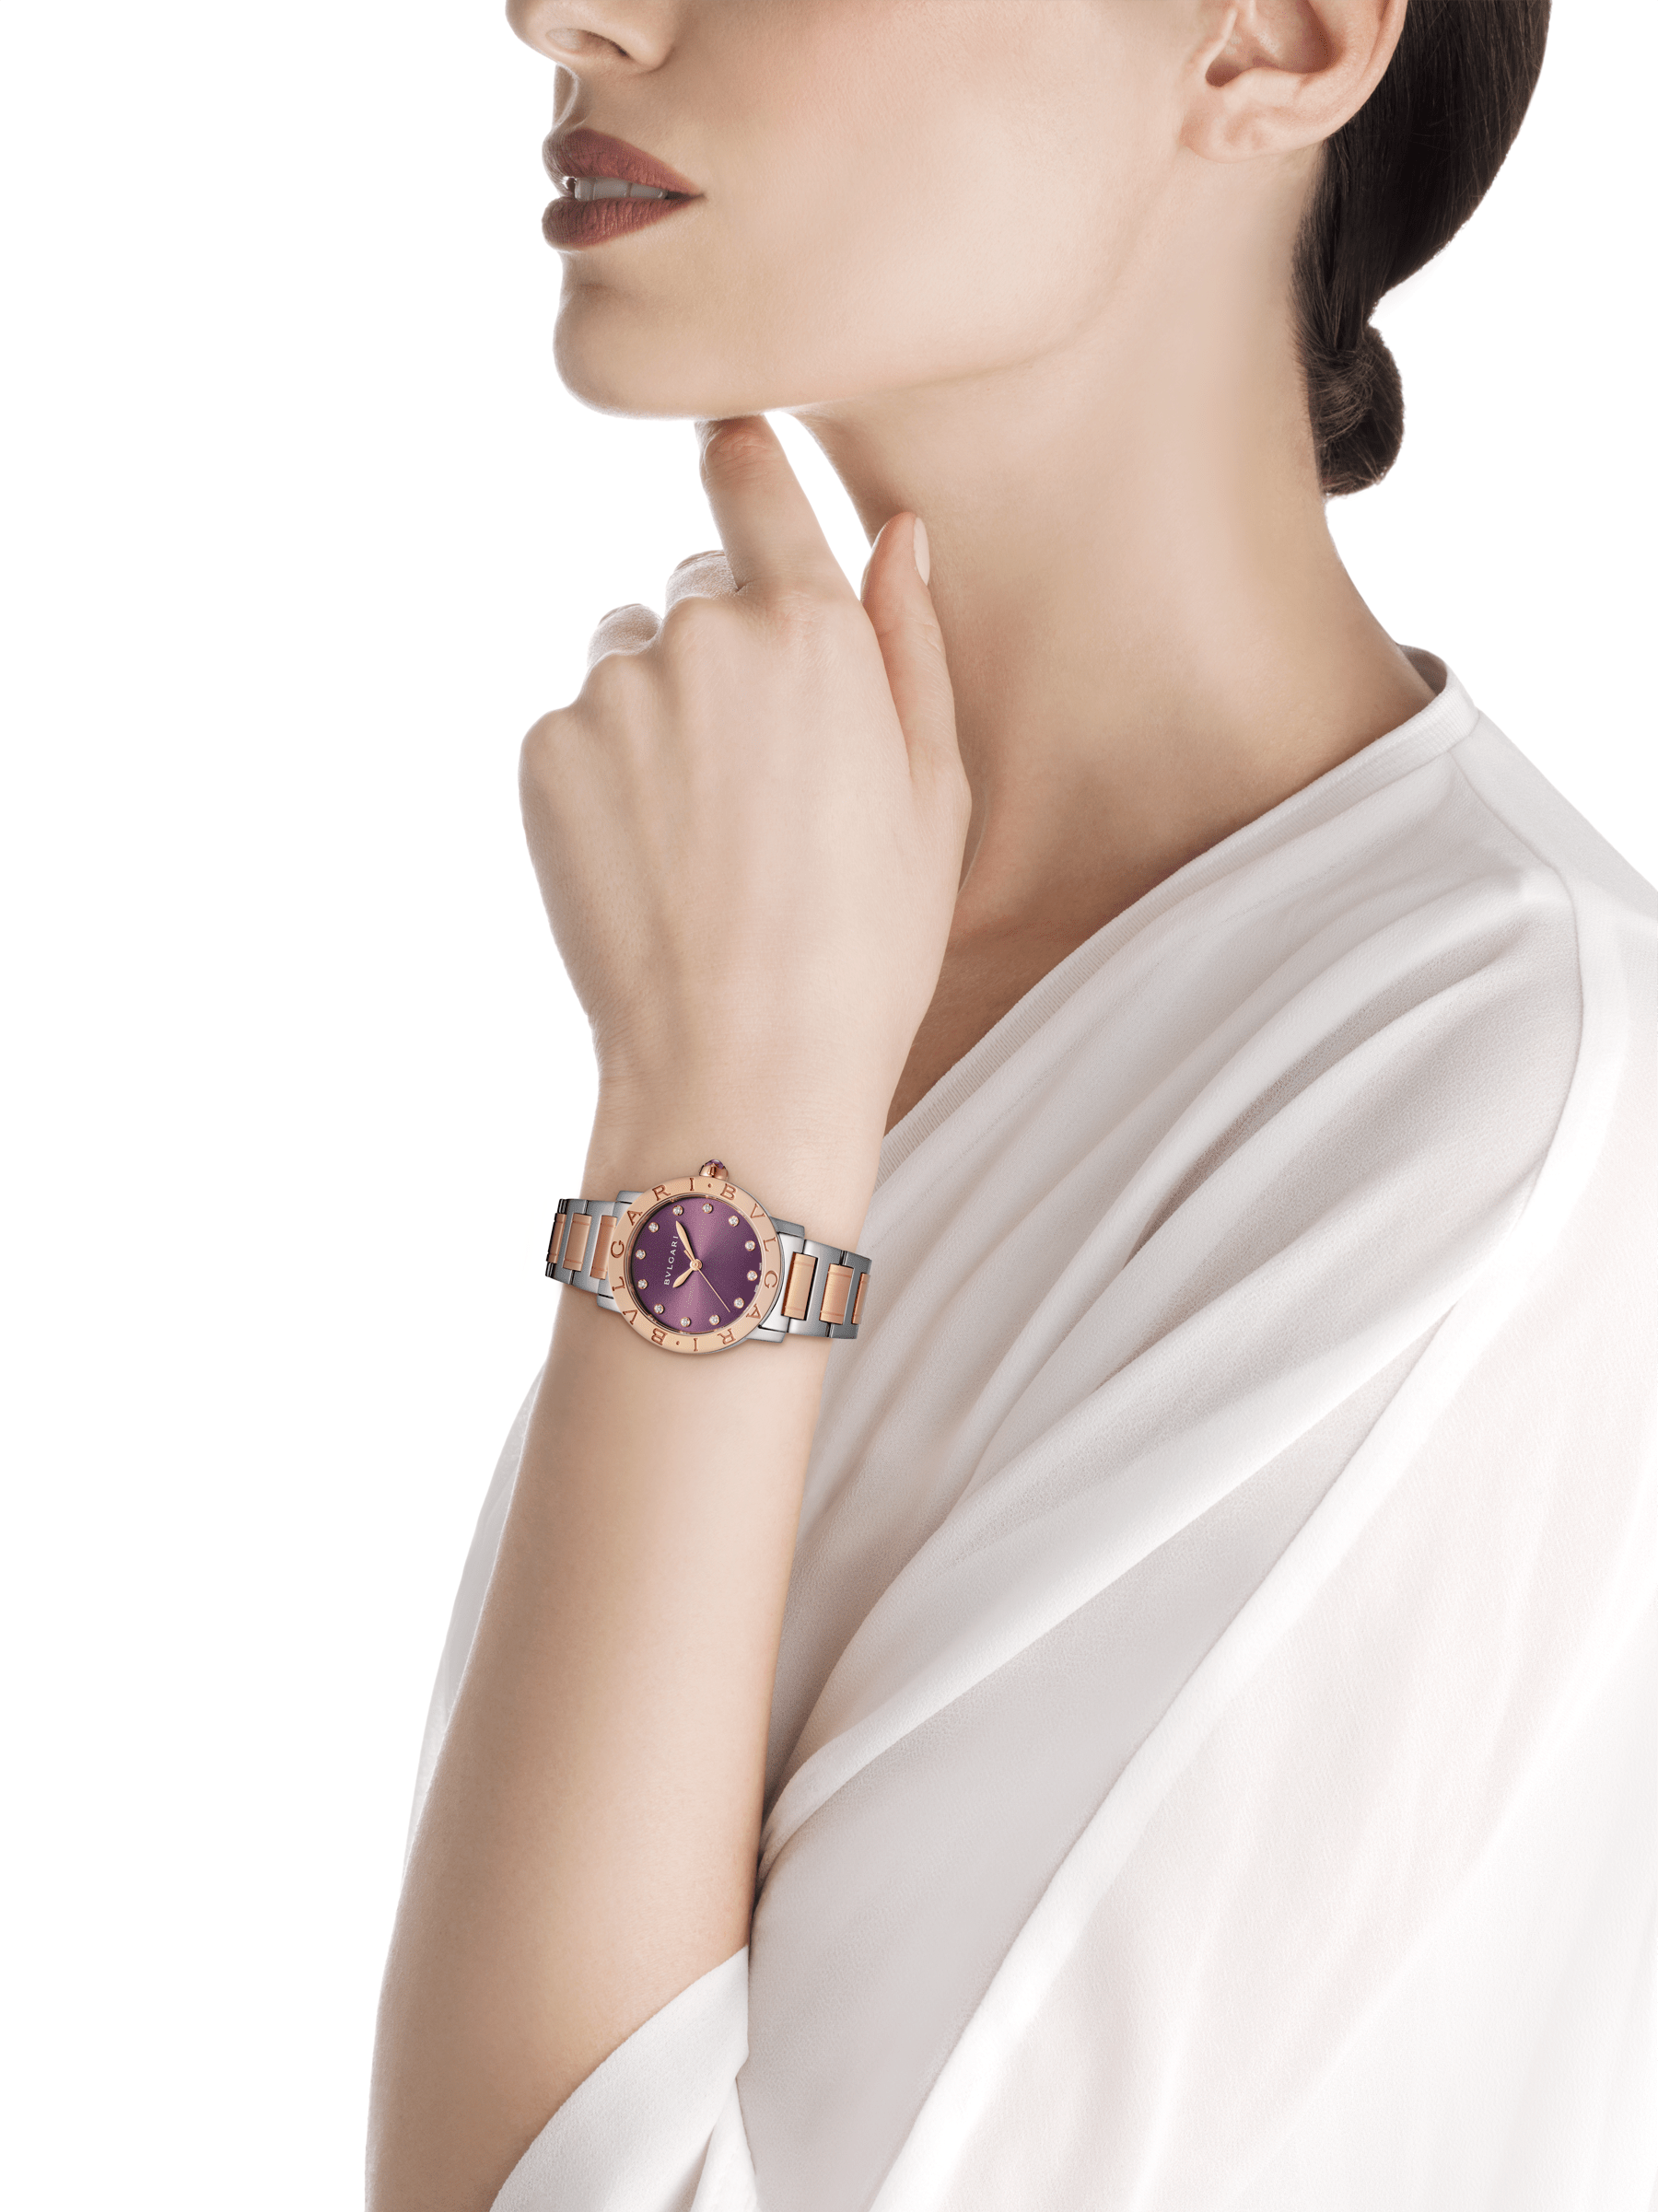 BVLGARI BVLGARI LADY watch in stainless steel and 18 kt rose gold case and bracelet, with purple satiné soleil lacquered dial and diamond indexes 102622 image 4